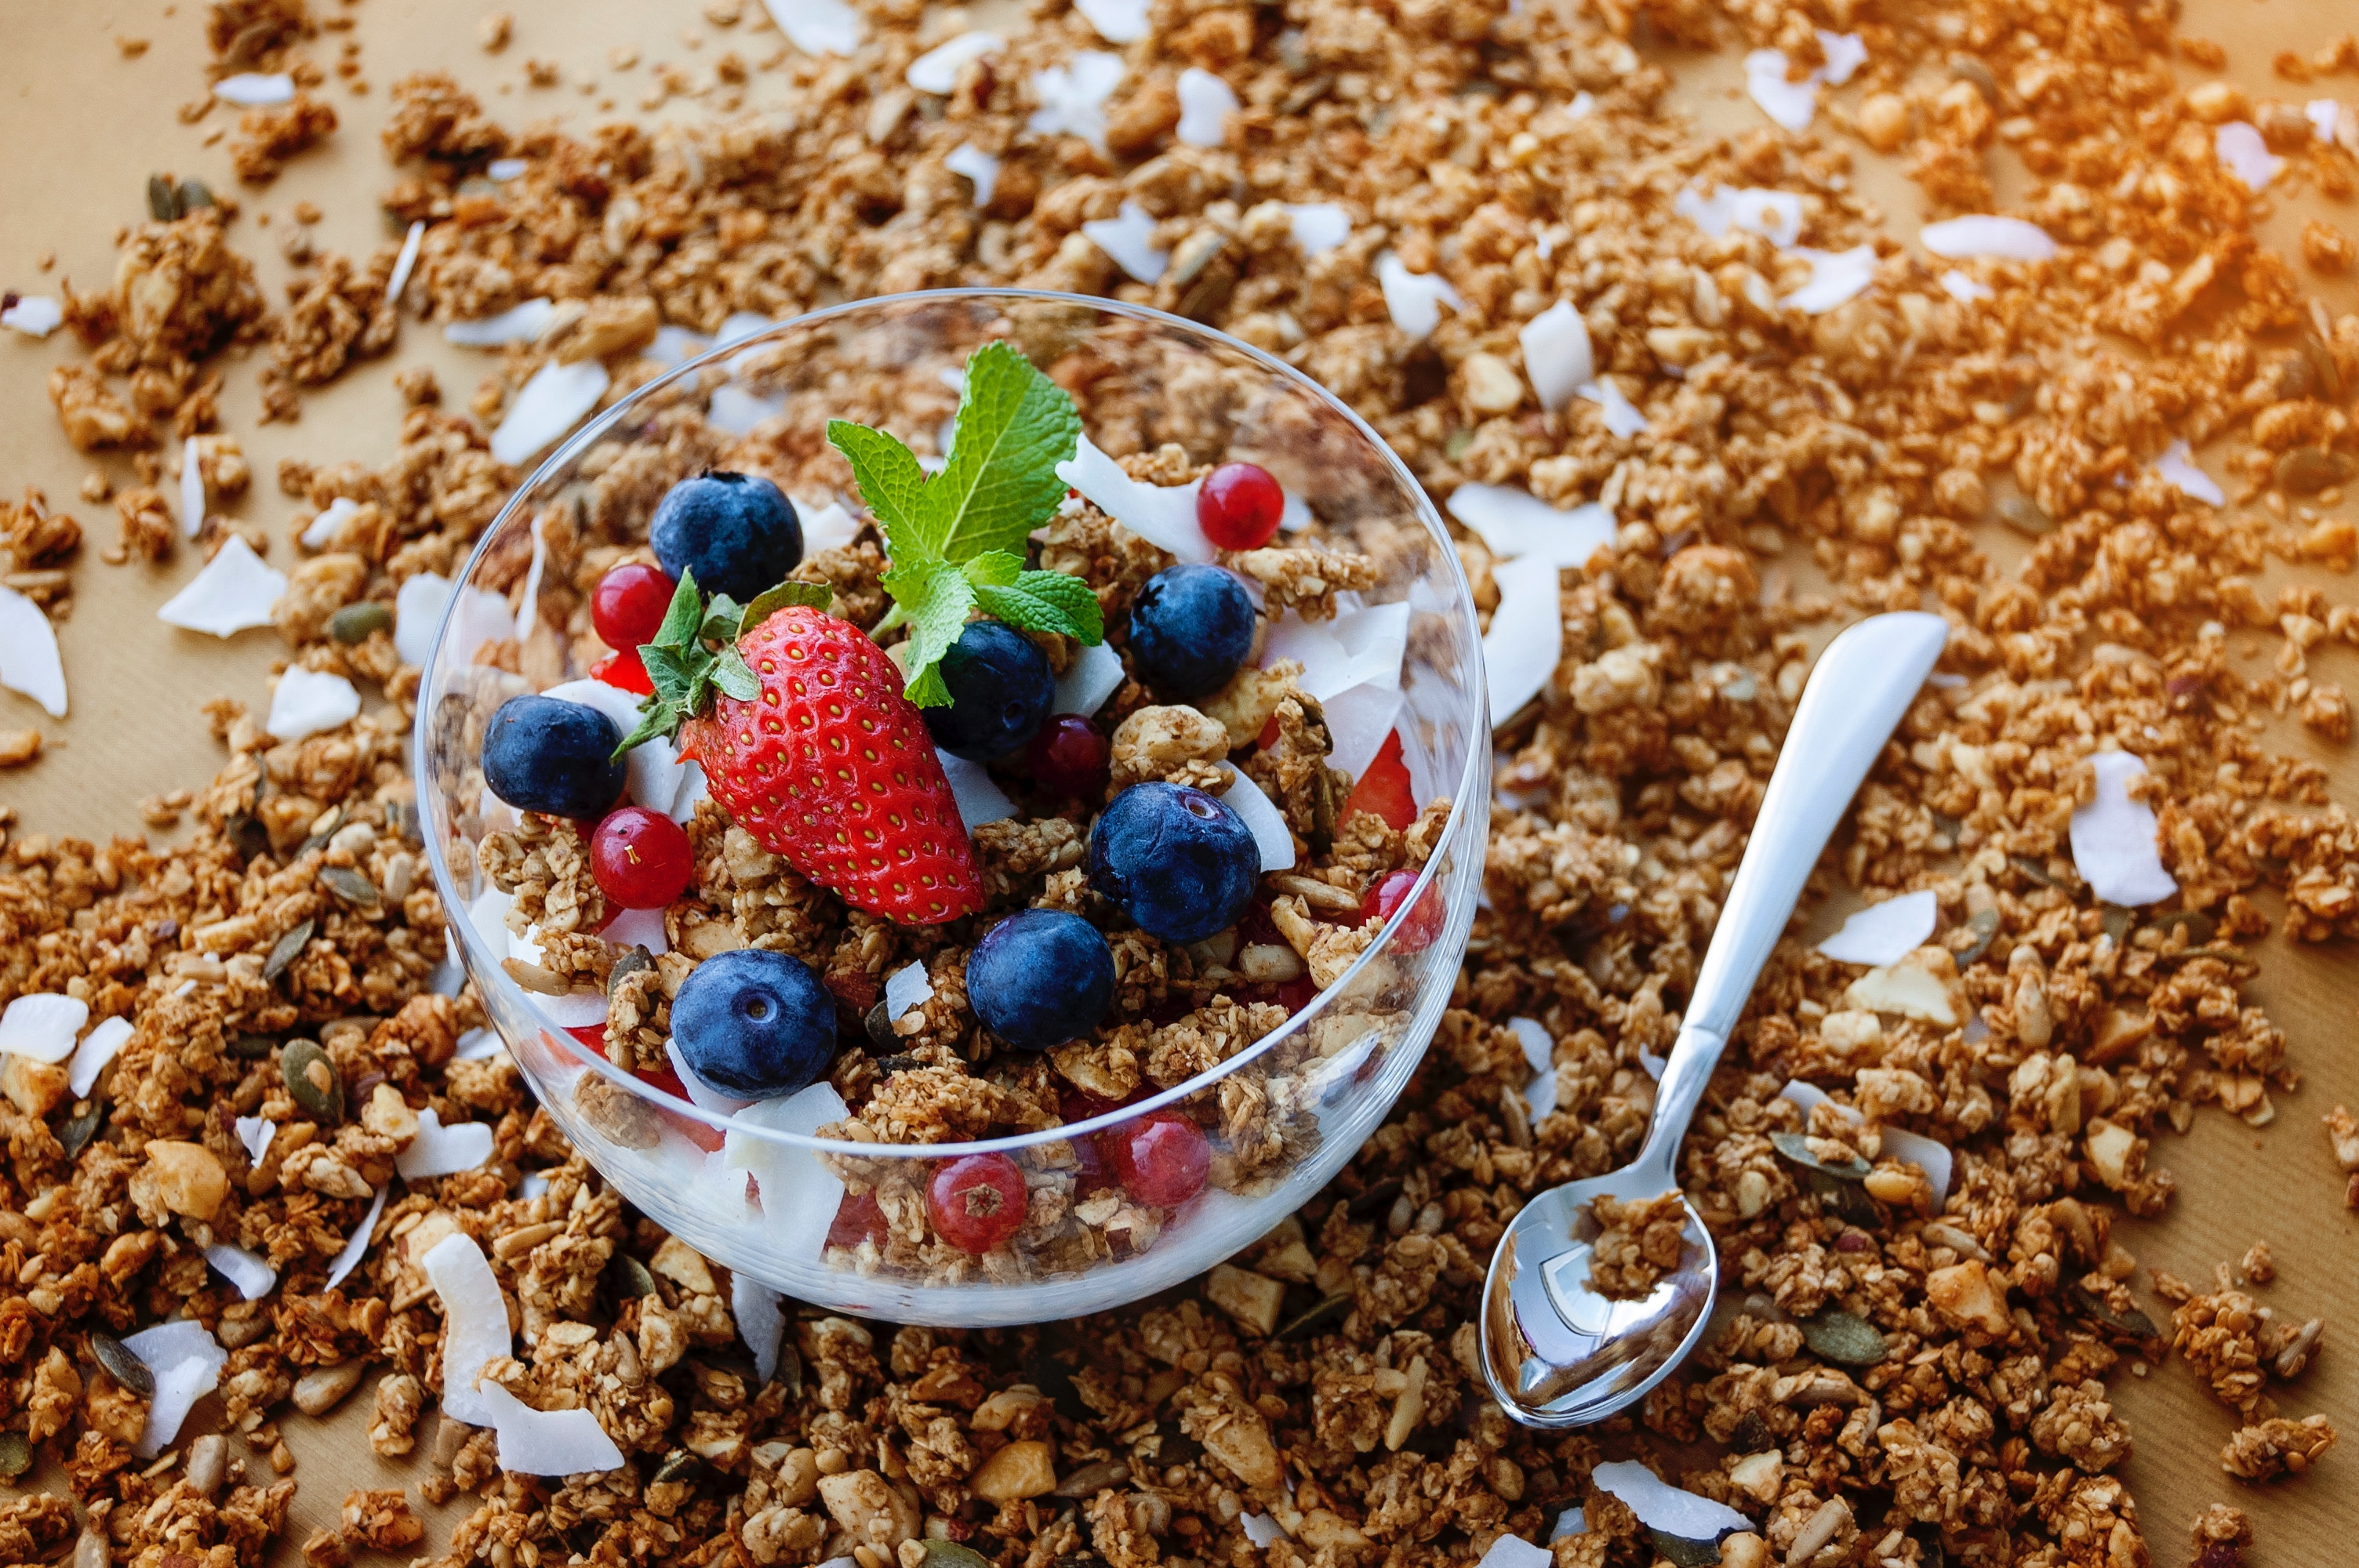 Granola is the preferred snack for active people